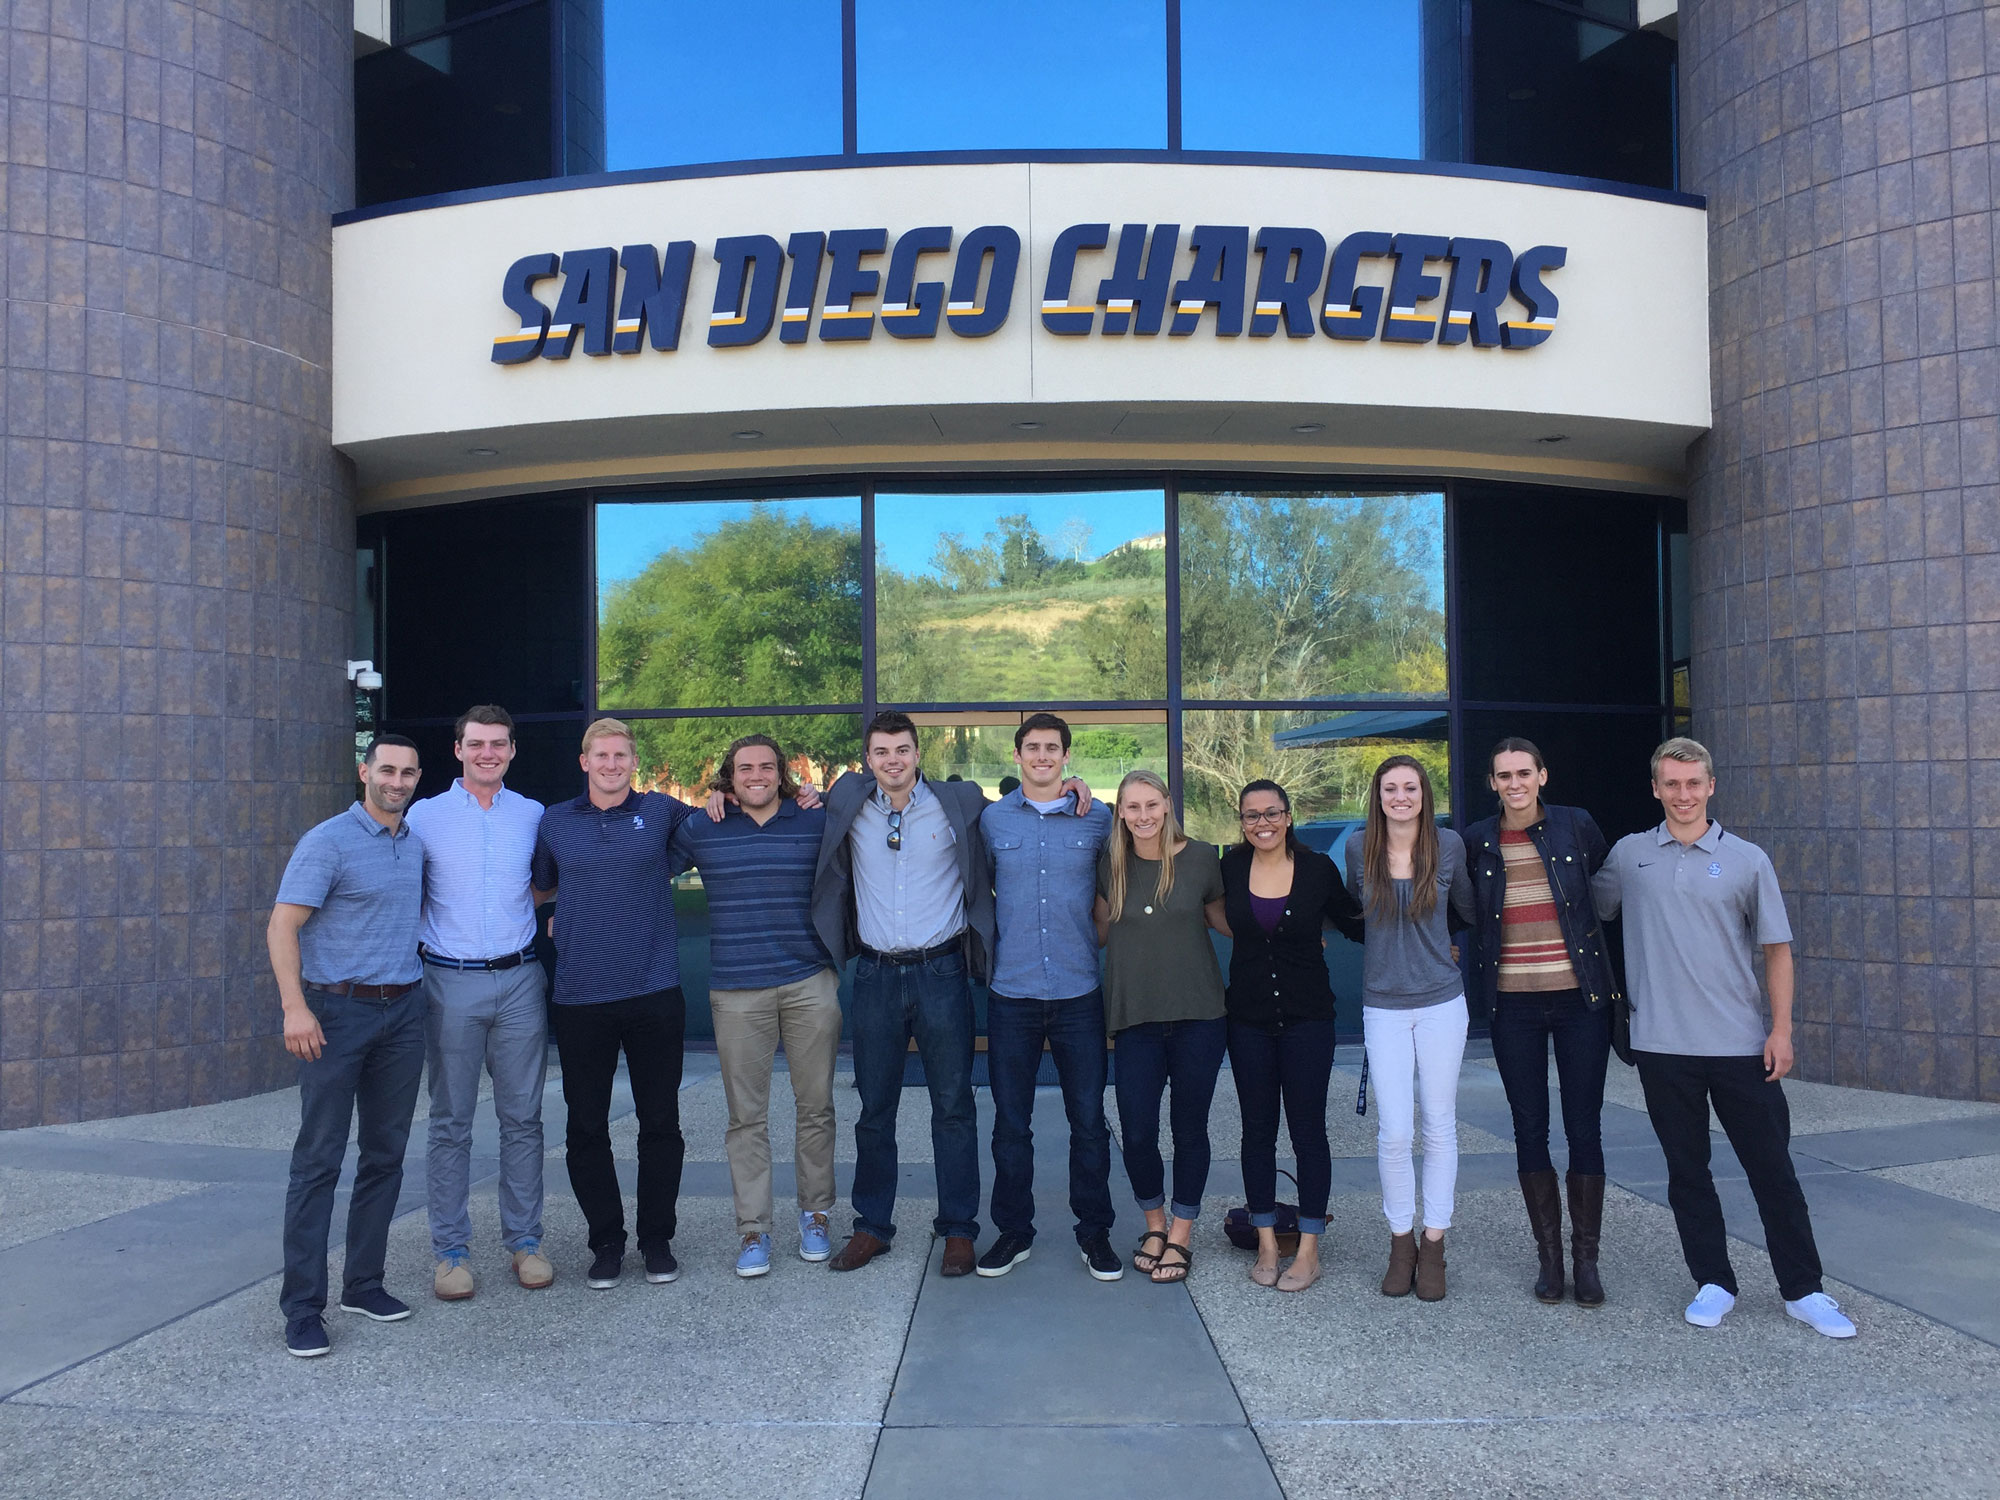 Greg Camarillo visiting San Diego Chargers with students